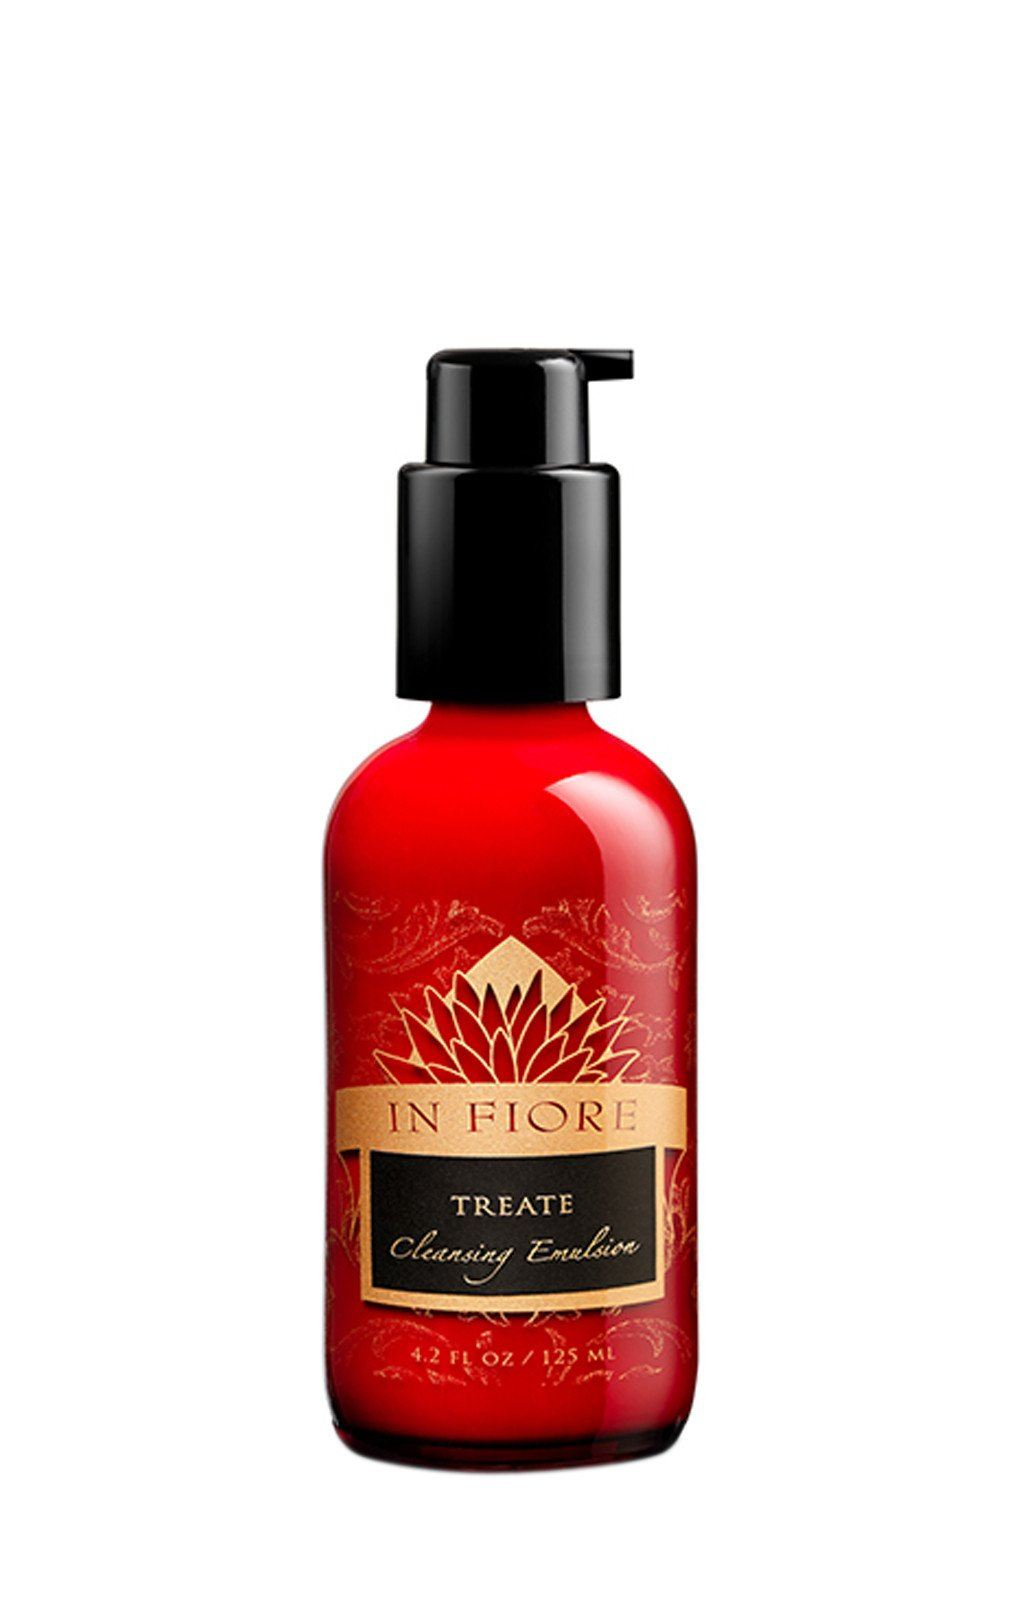 In Fiore Treate Gentle Cleansing Emulsion